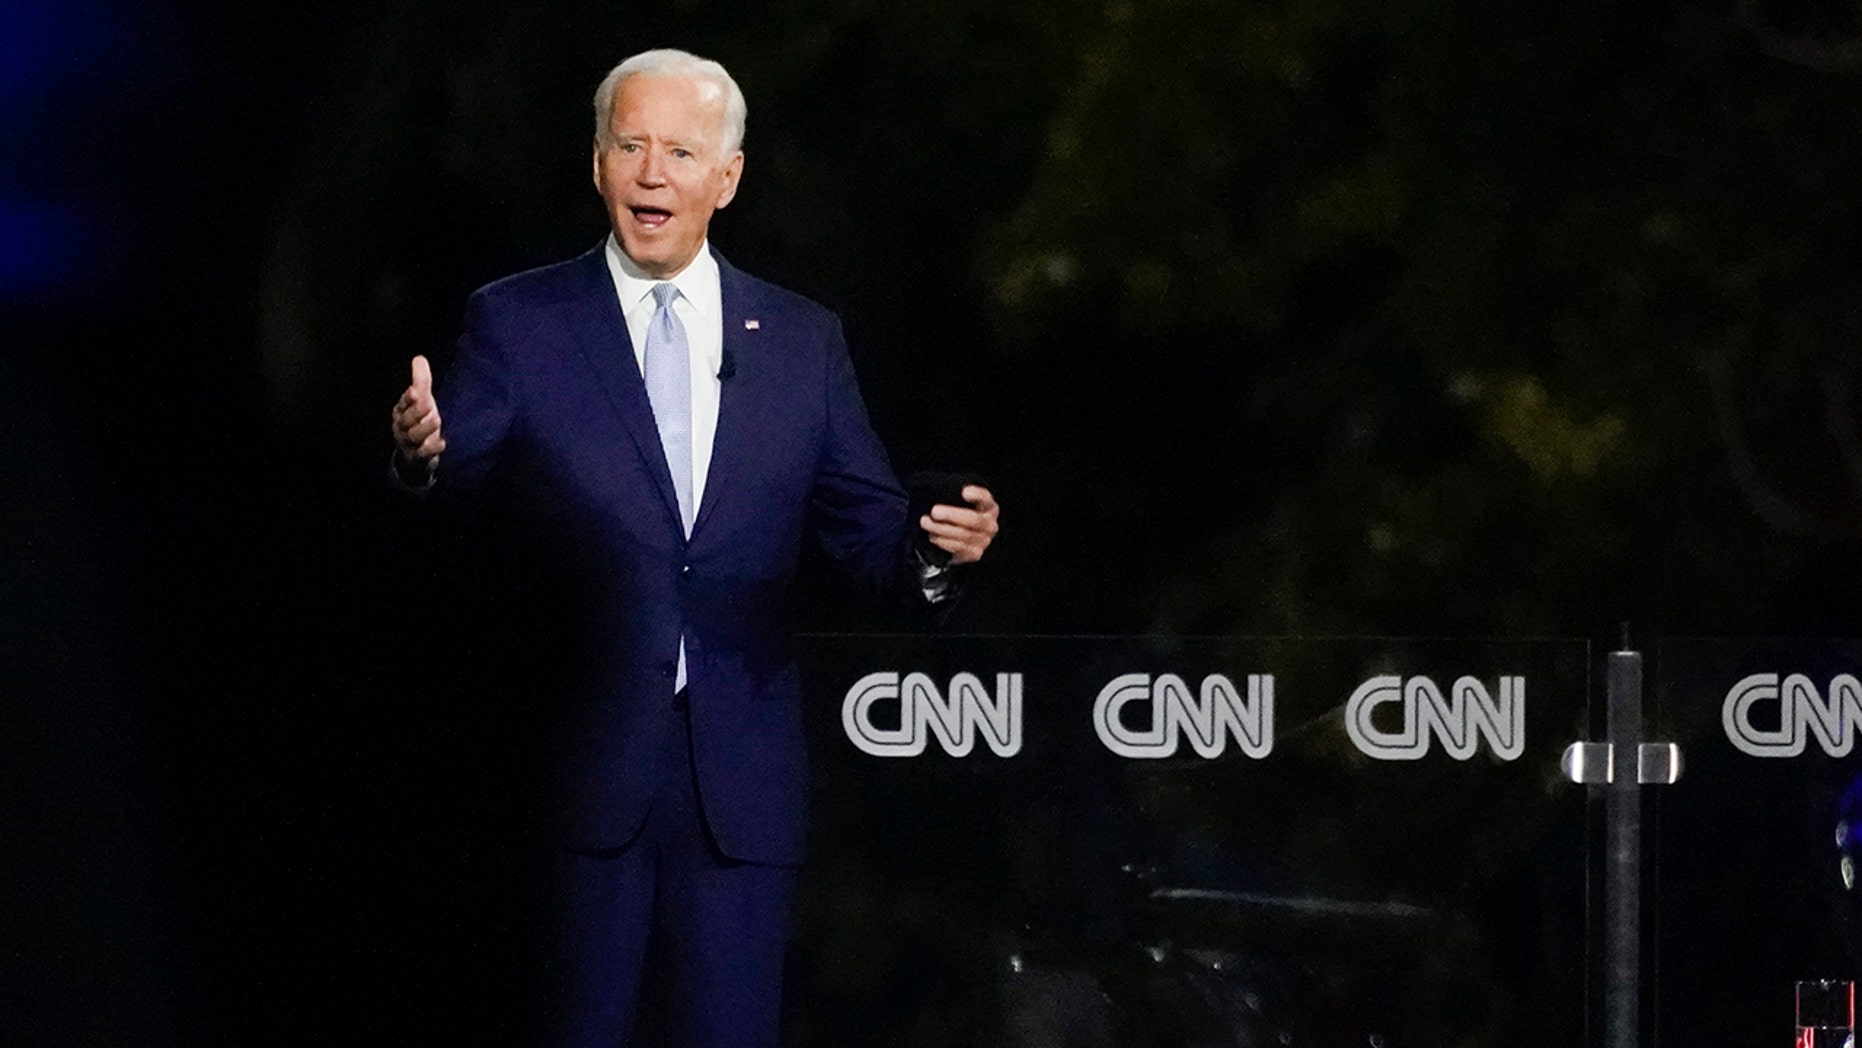 Biden town hall on CNN blasted for too many 'softball' questions 15